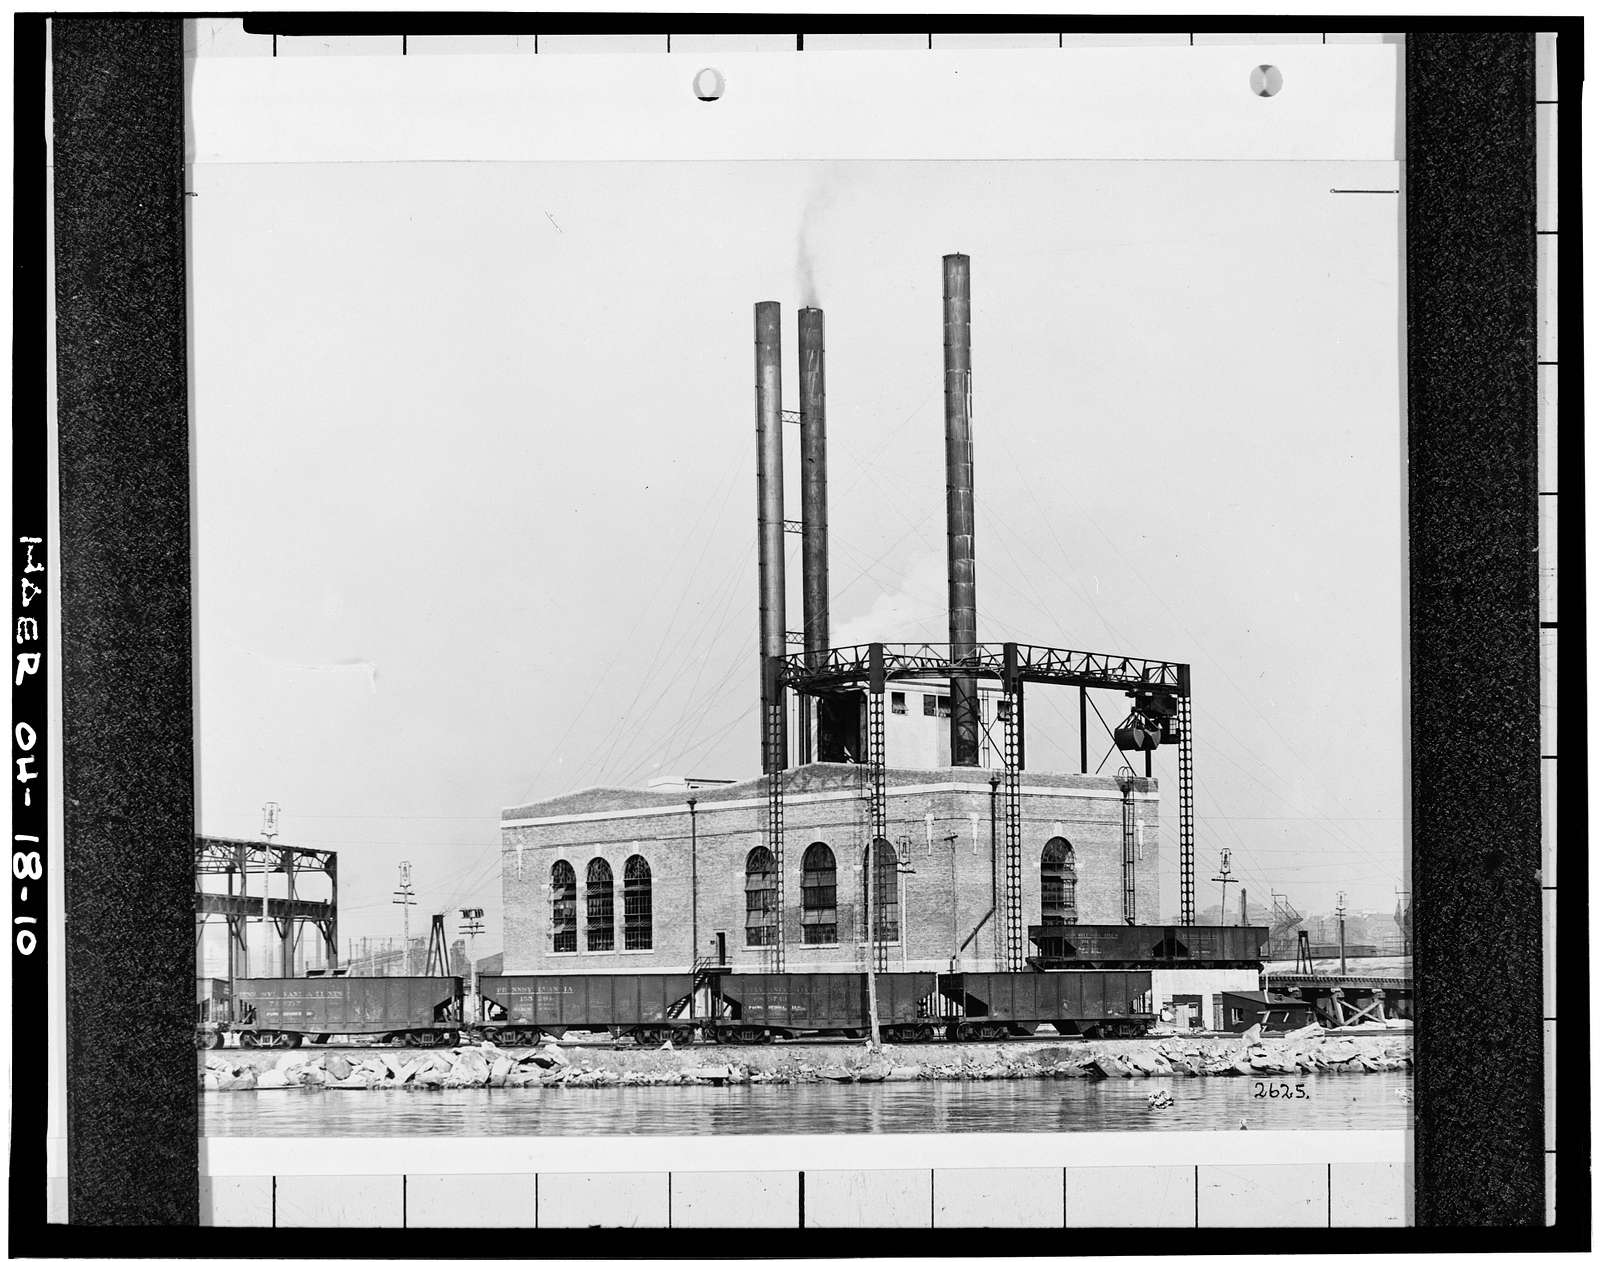 Pennsylvania Railway Ore Dock, Lake Erie at Whiskey Island, approximately 1.5 miles west of Public Square, Cleveland, Cuyahoga County, OH